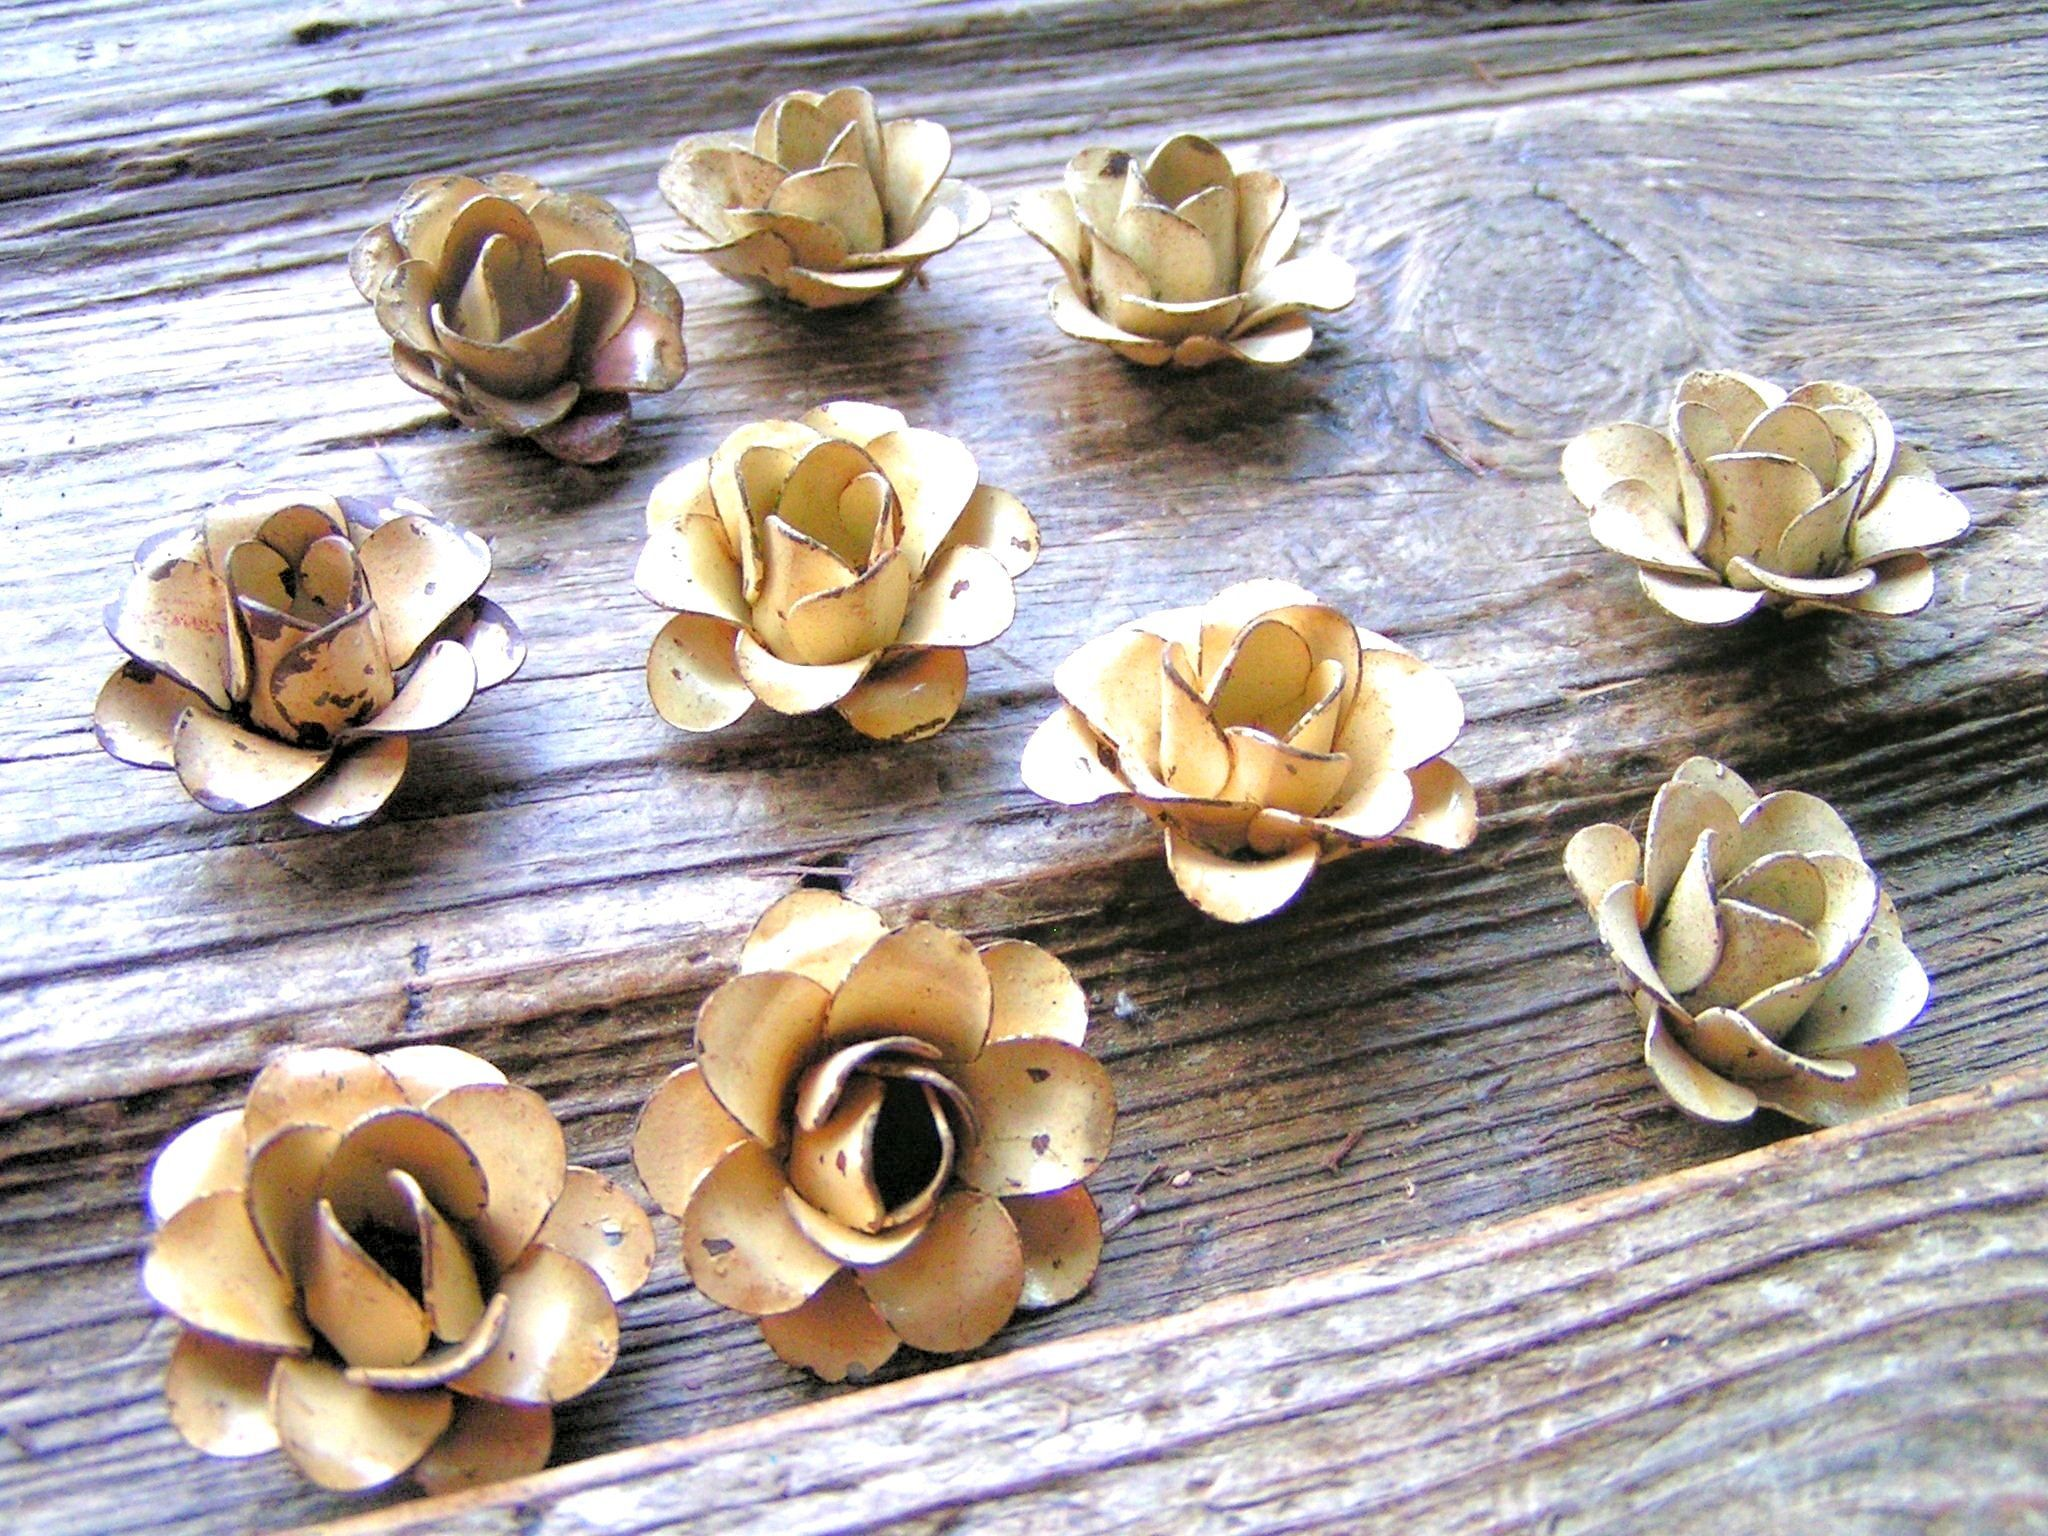 jewelry art woodworking arrangements flowers for accents Two Large metal BLACK roses crafting embellishments